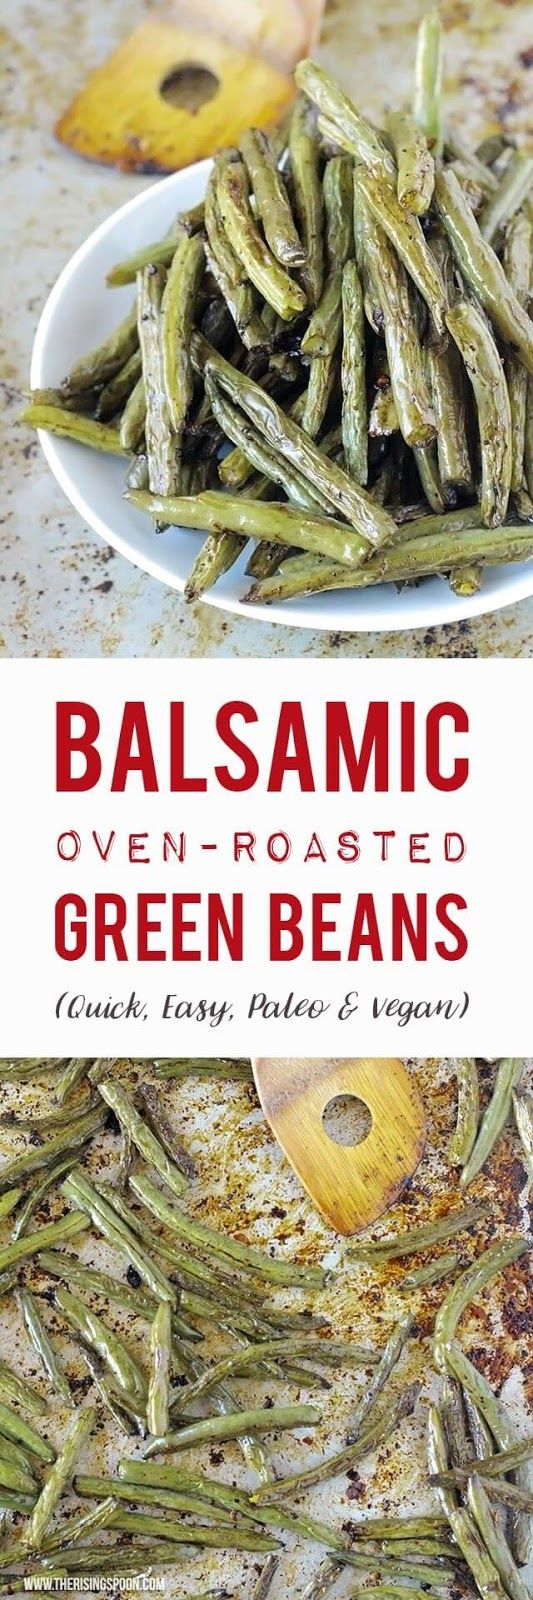 Fresh green beans cut in half, tossed with cooking oil, seasonings and aged balsamic vinegar then quick-roasted in the oven til tender, slightly caramelized and crispy around the edges. So easy & the oven does all the work! {vegan, paleo, grain-free, gluten-free recipe}